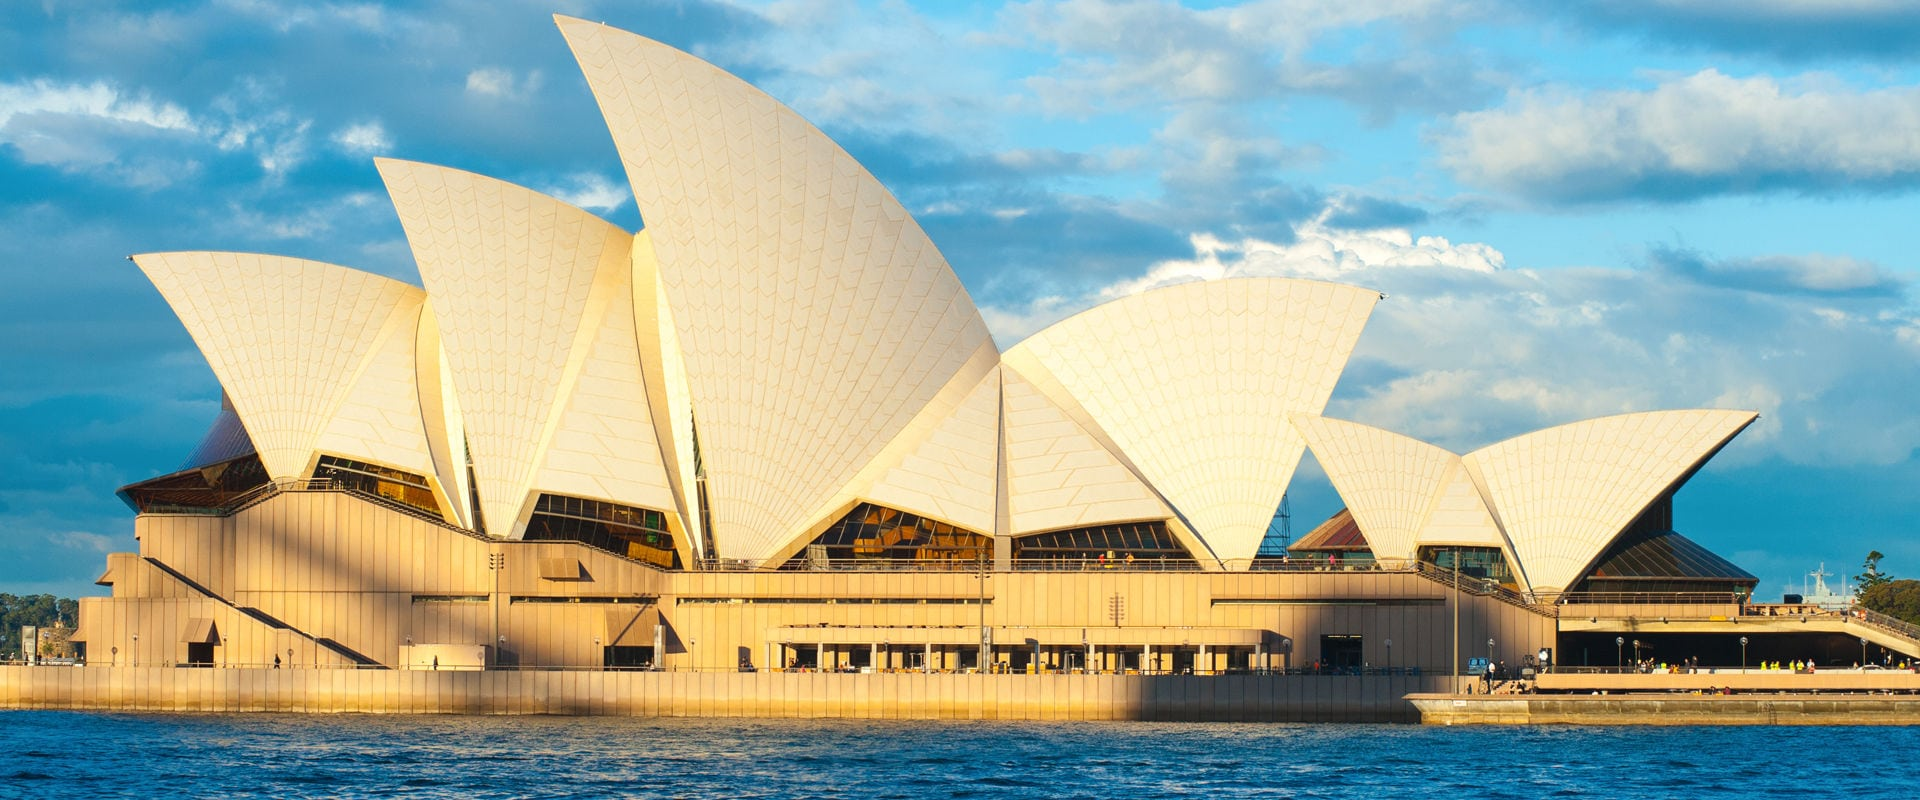 The Grantourismo Travels Guide to Sydney, Australia. Copyright © 2017 Terence Carter / Grantourismo. All Rights Reserved.